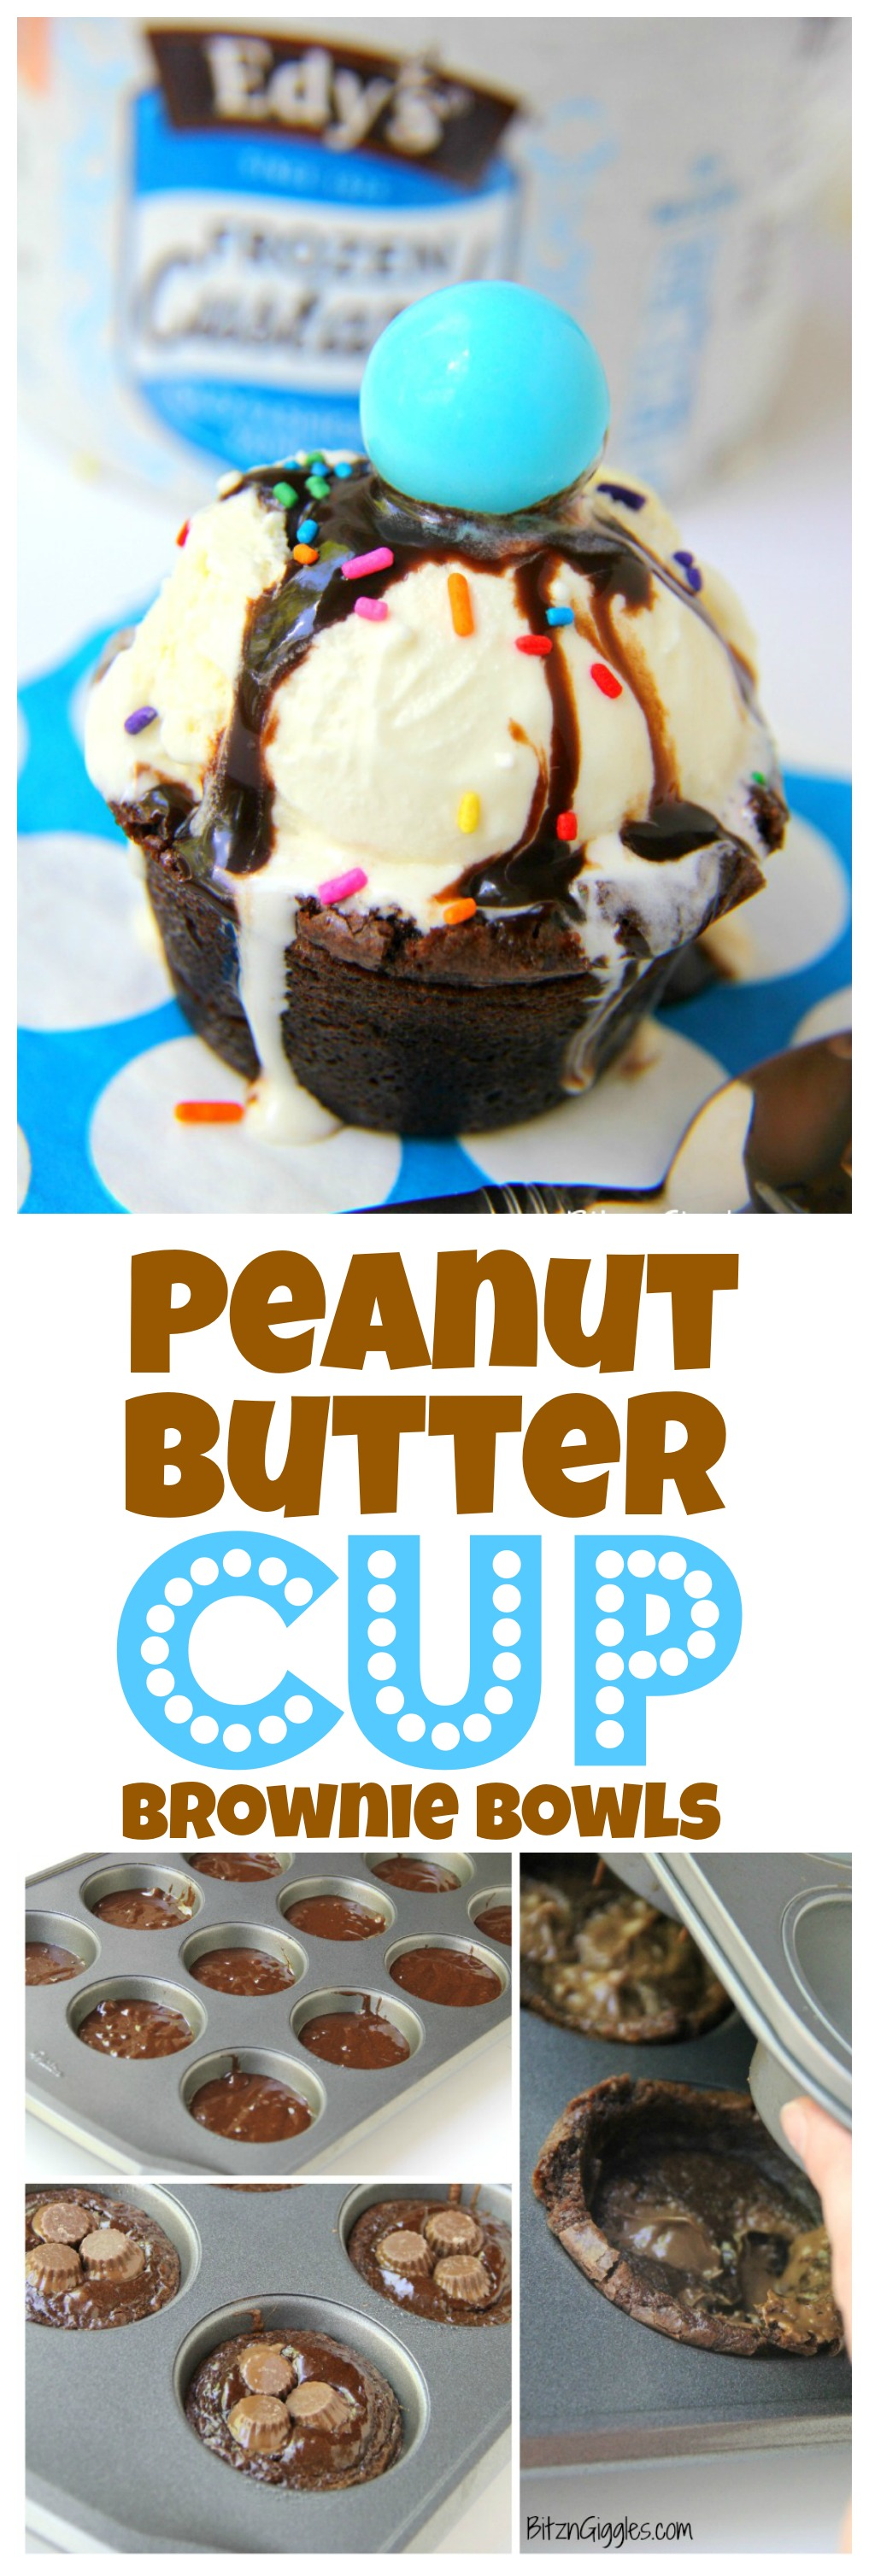 Peanut Butter Cup Brownie Bowls - A peanut butter cup infused brownie bowl perfect to build your ice cream sundae in!